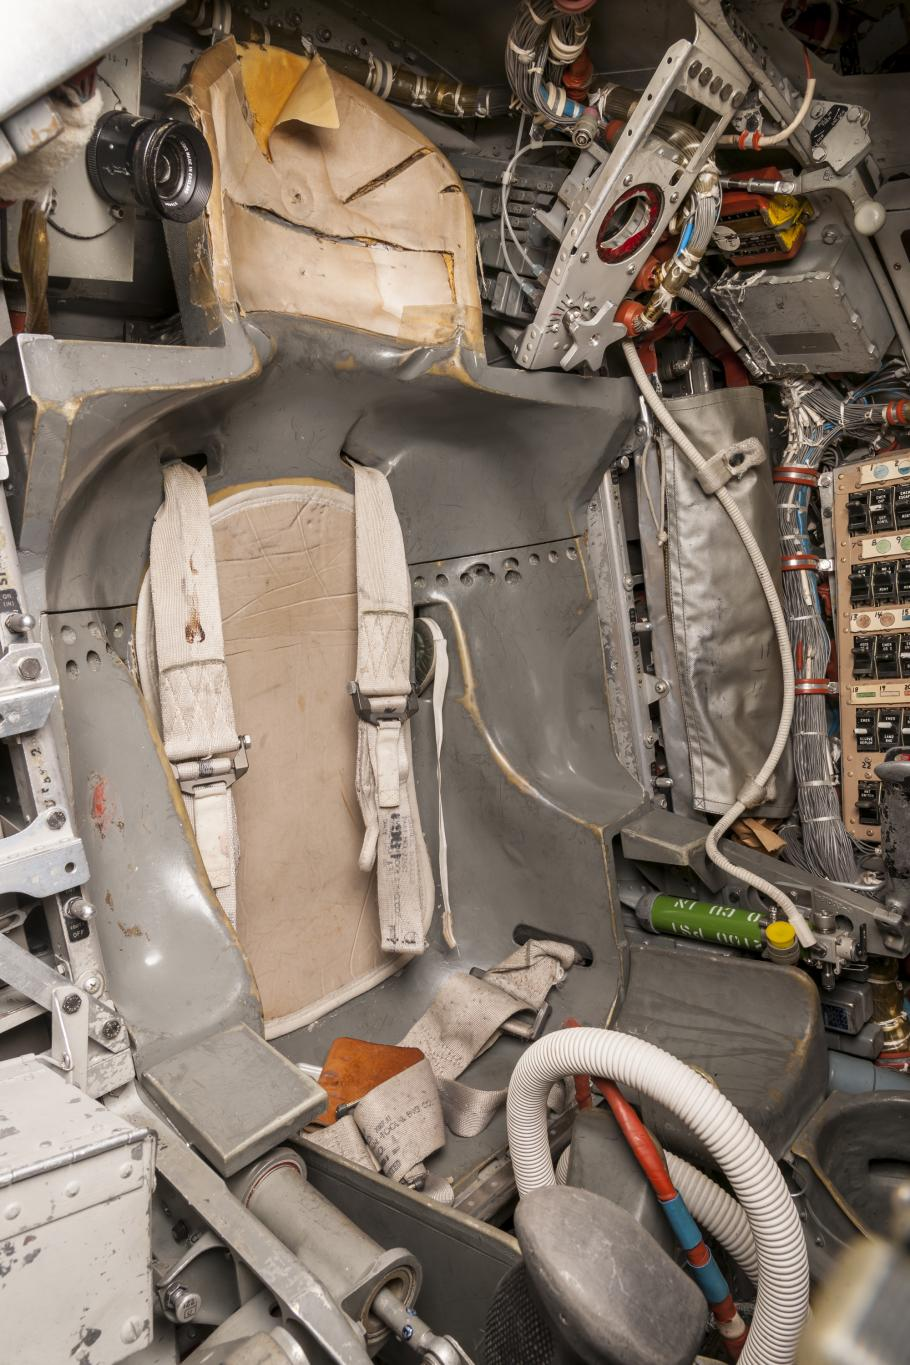 Interior of the capsule with astronaut seat visible.